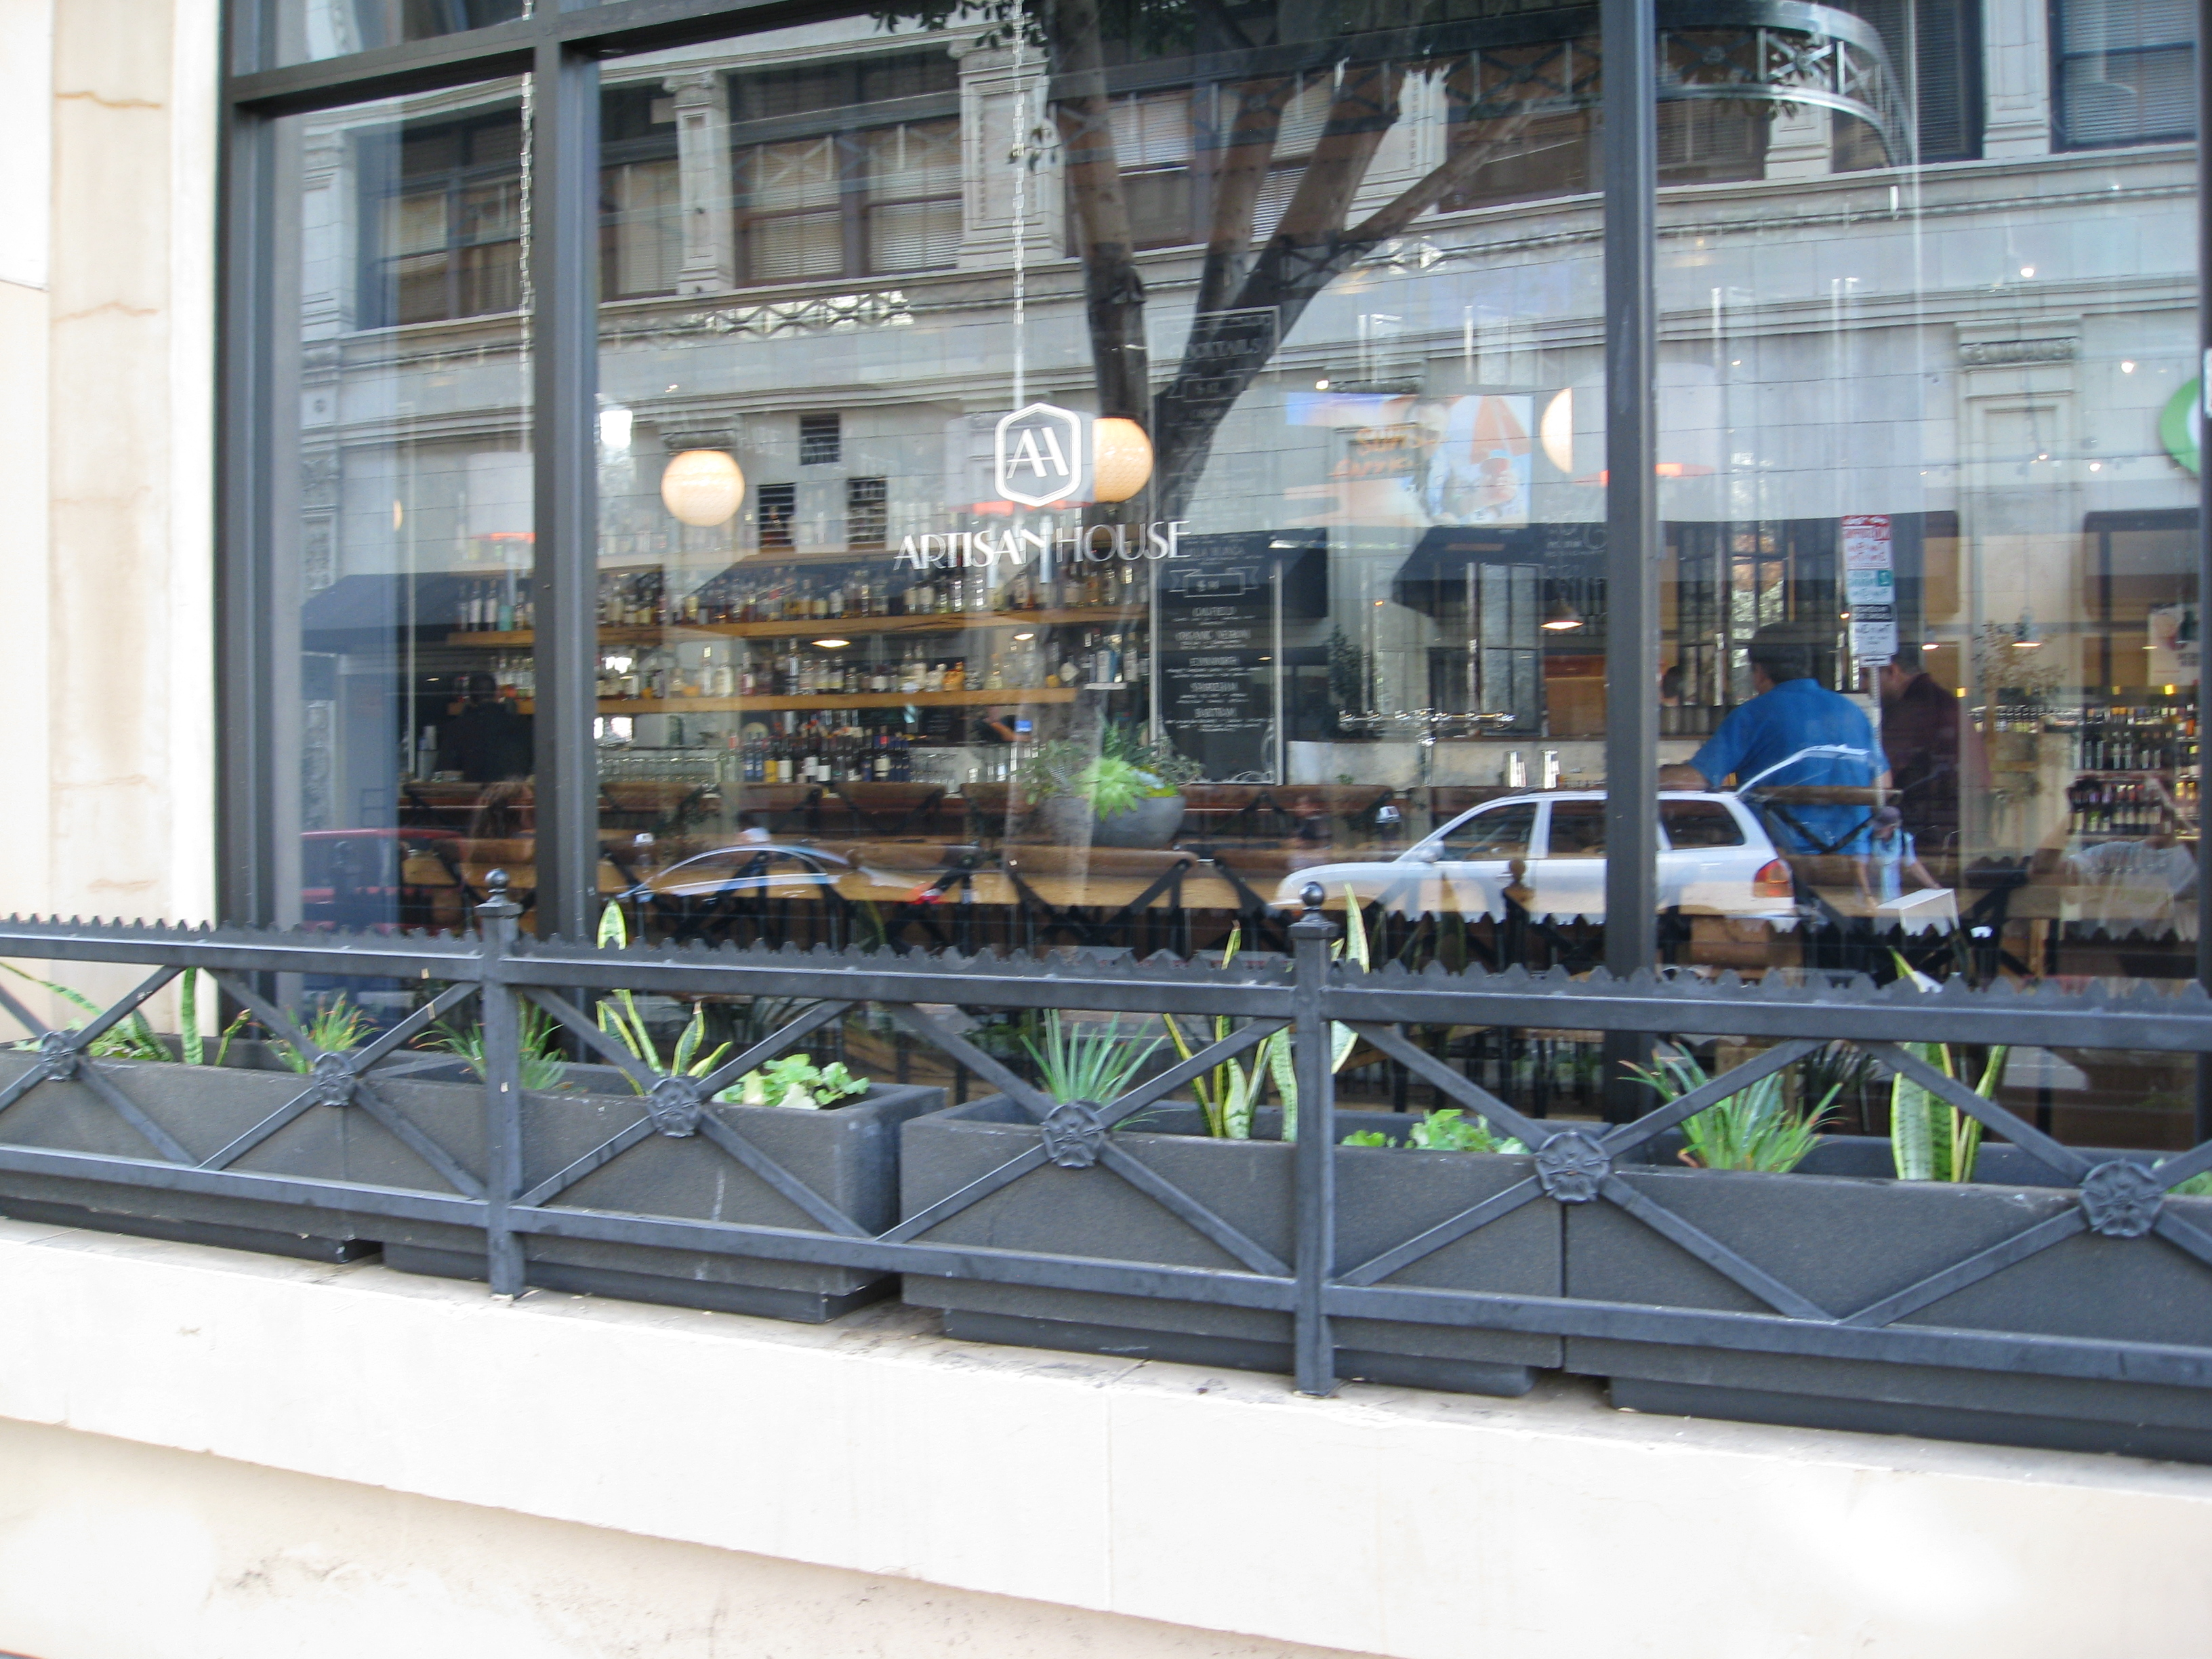 New Restaurant Garden in Downtown LA Gardenerd